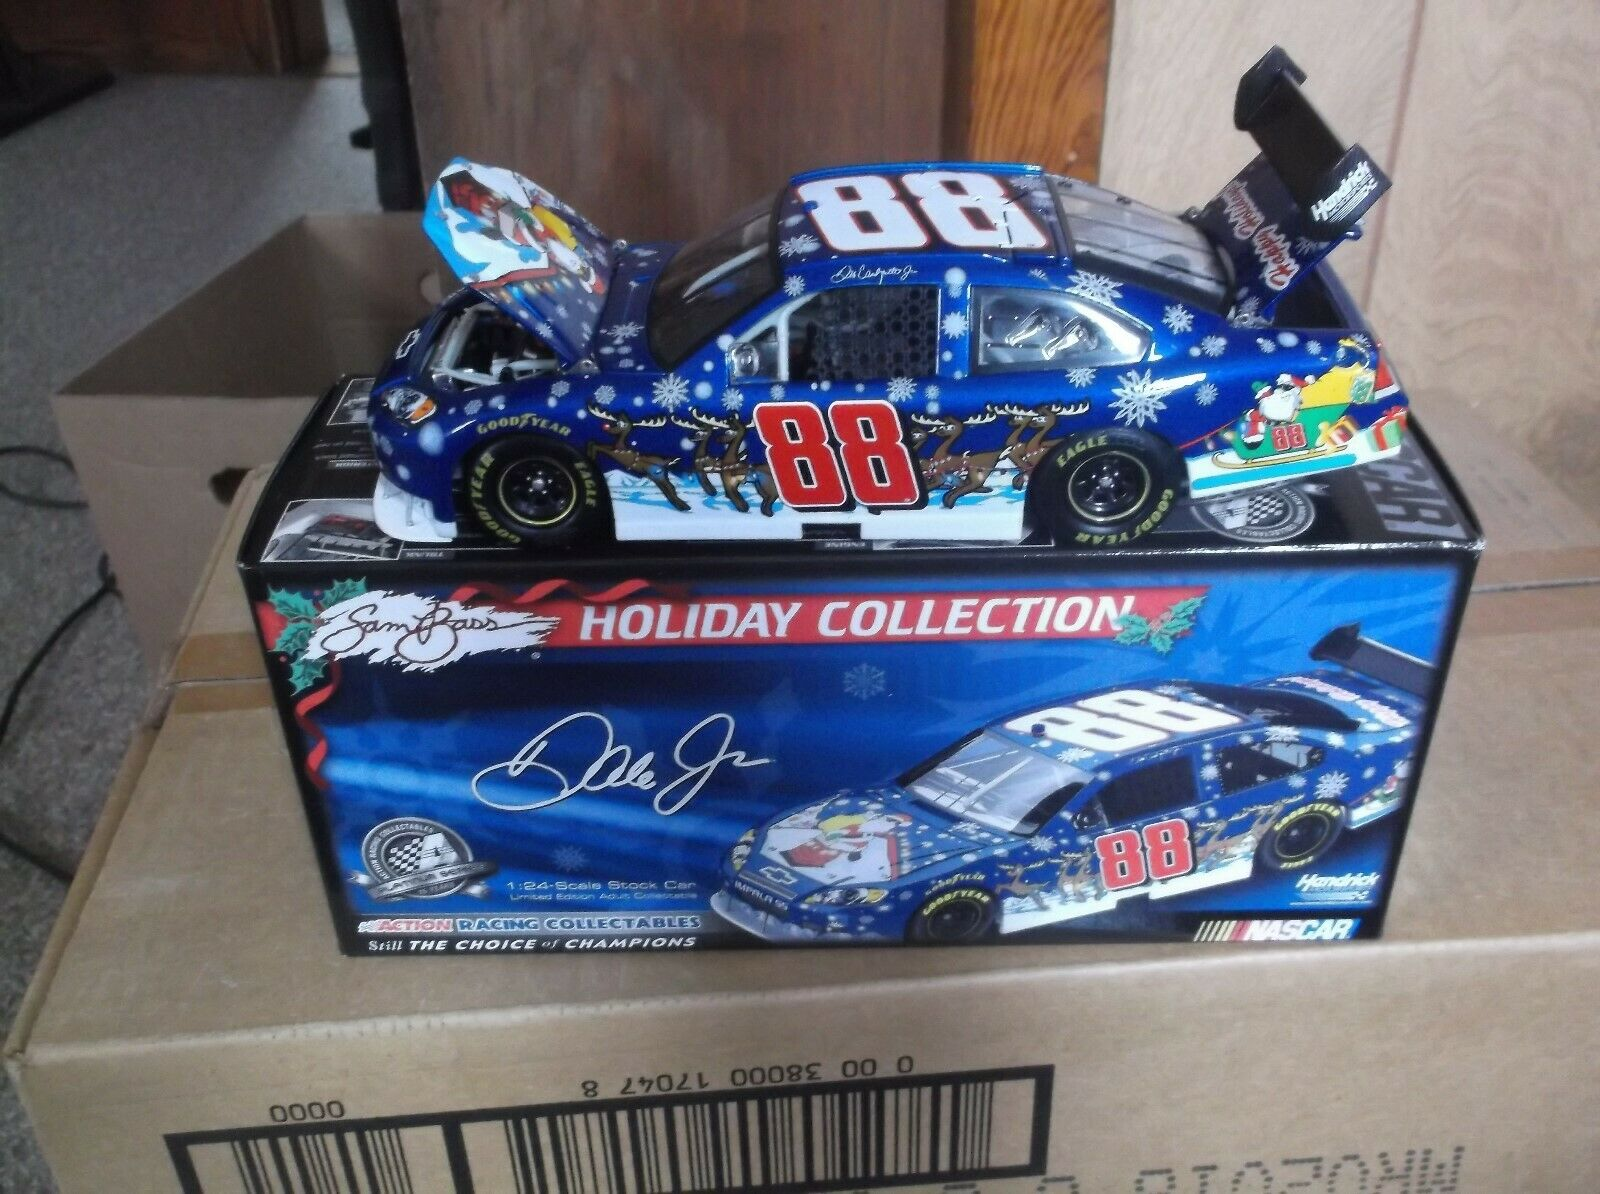 2008 DALE EARNHARDT JR 88 SAM BASS HOLIDAY 1 24TH SCALE DIECAST